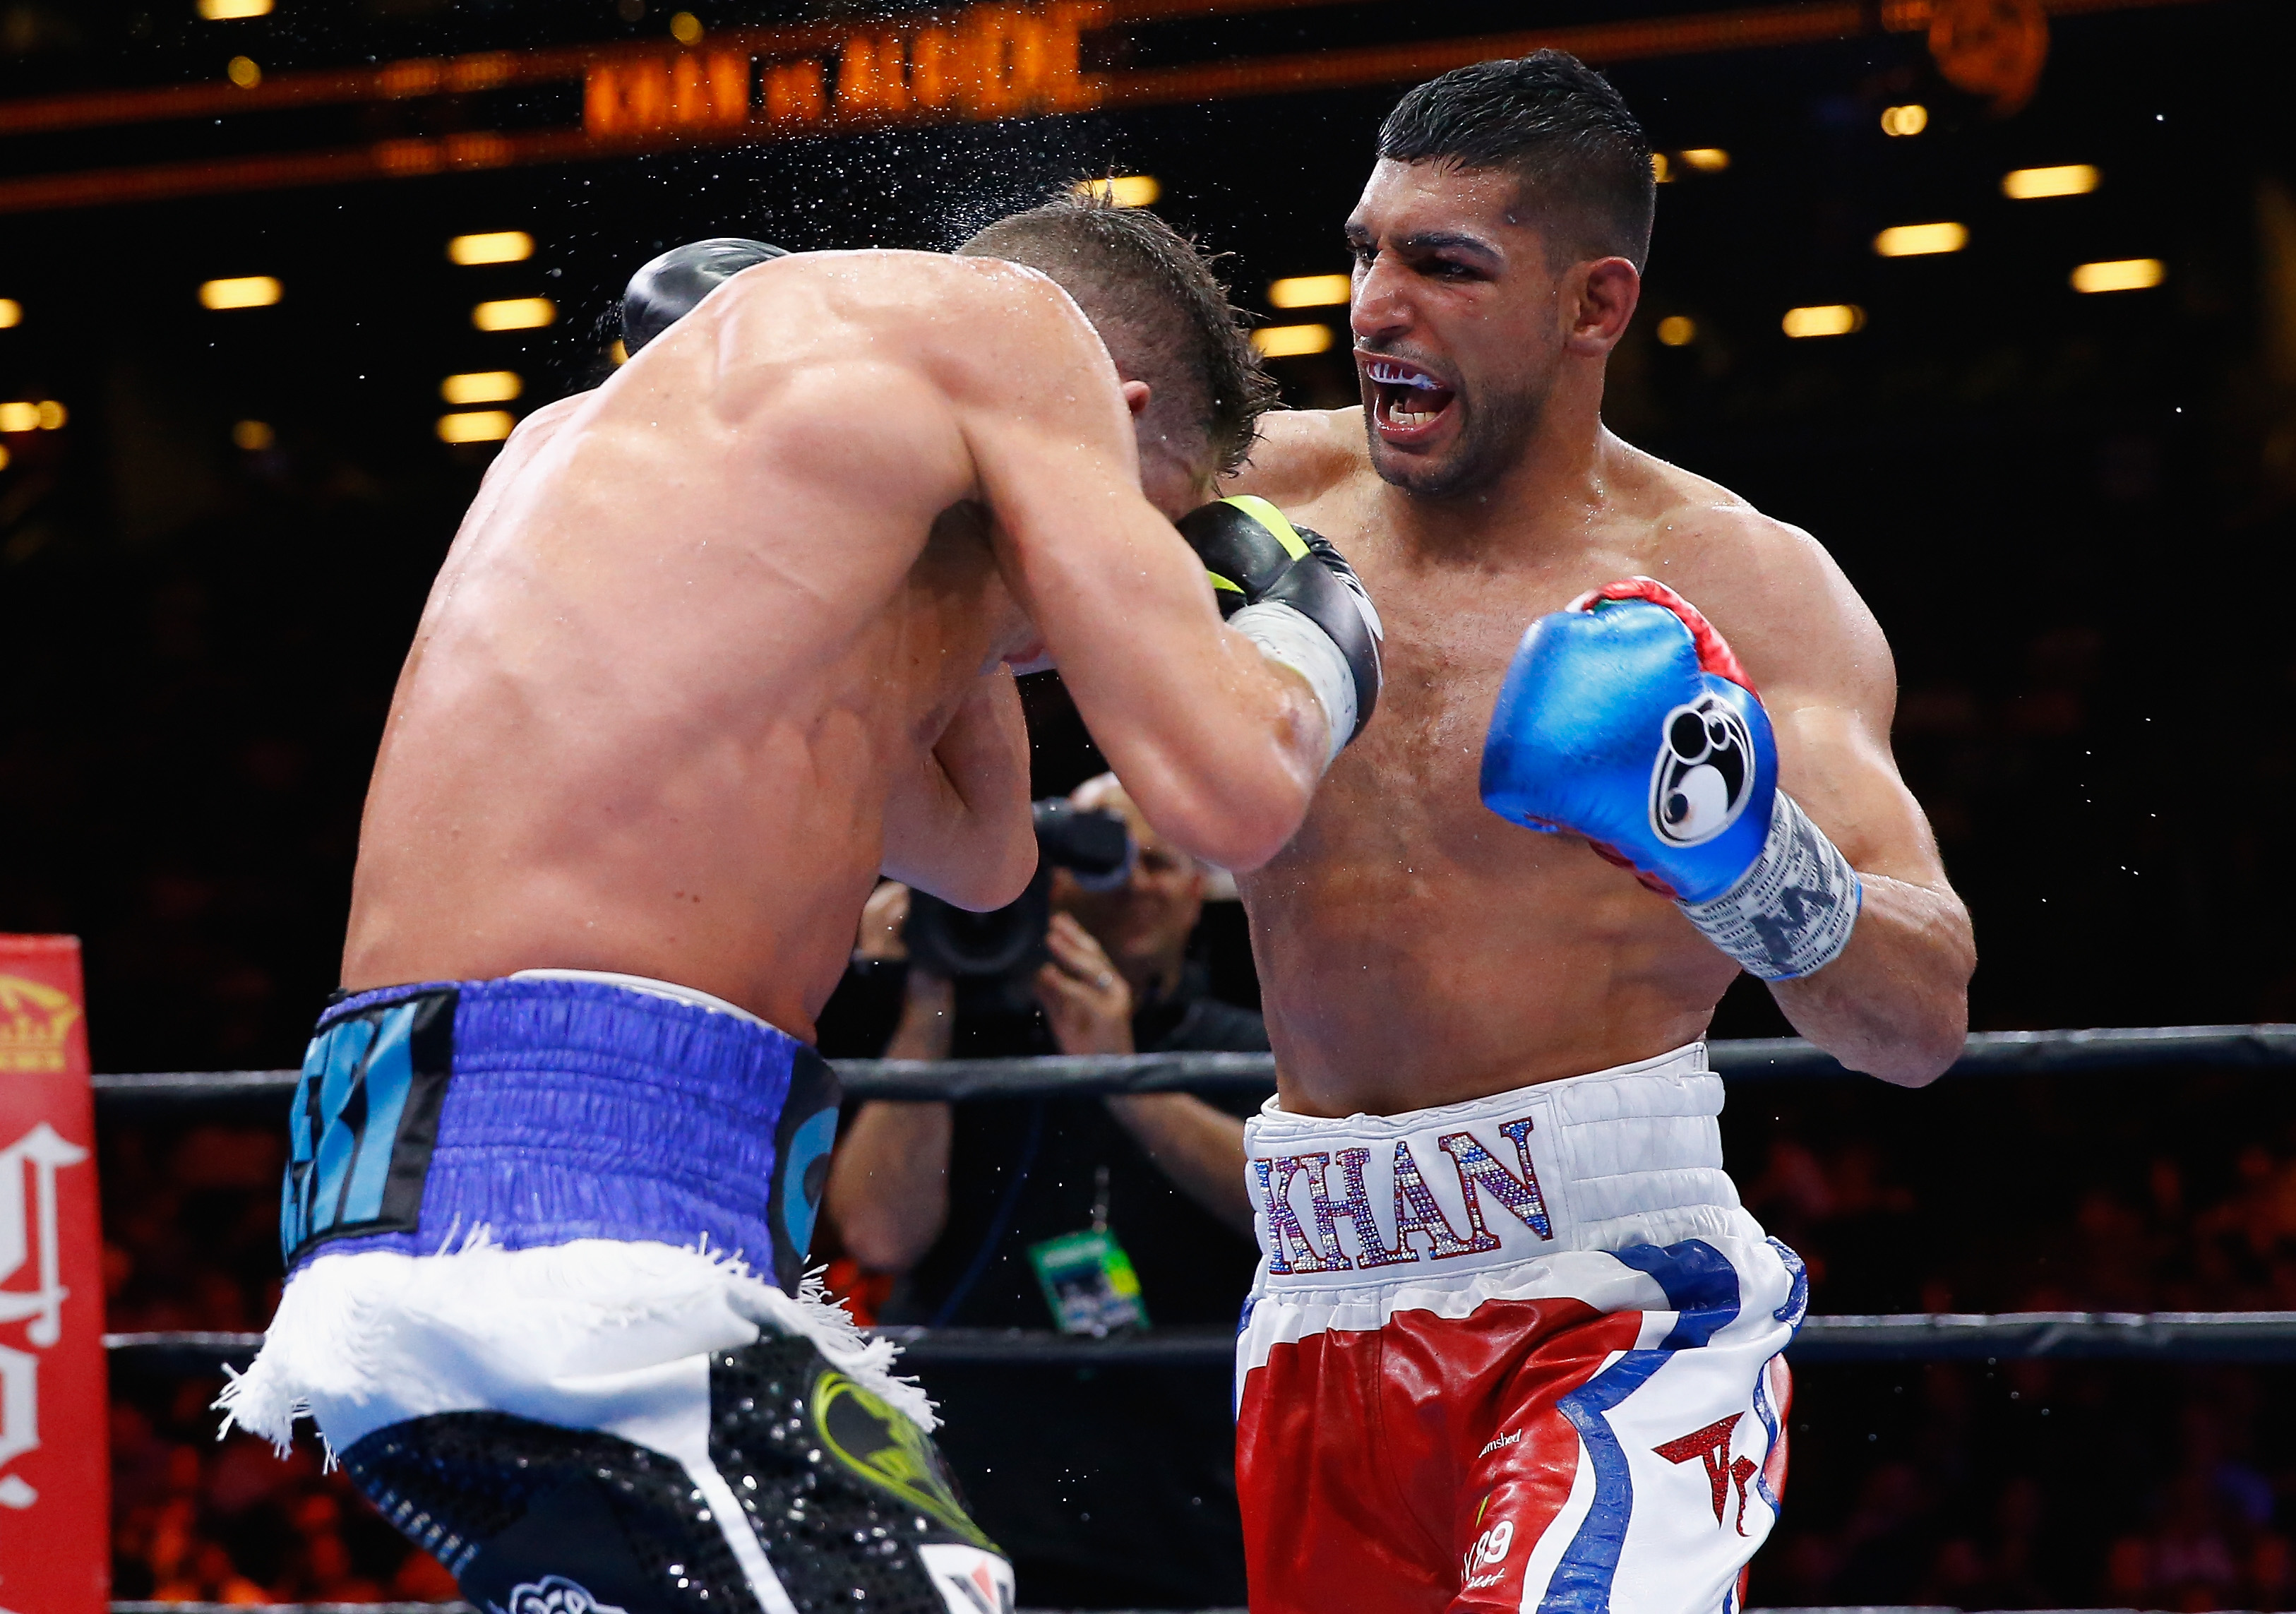 Amir Khan punches Chris Algieri during their Welterweight bout at Barclays Center of Brooklyn on May 29, 2015 in New York City. (Getty)